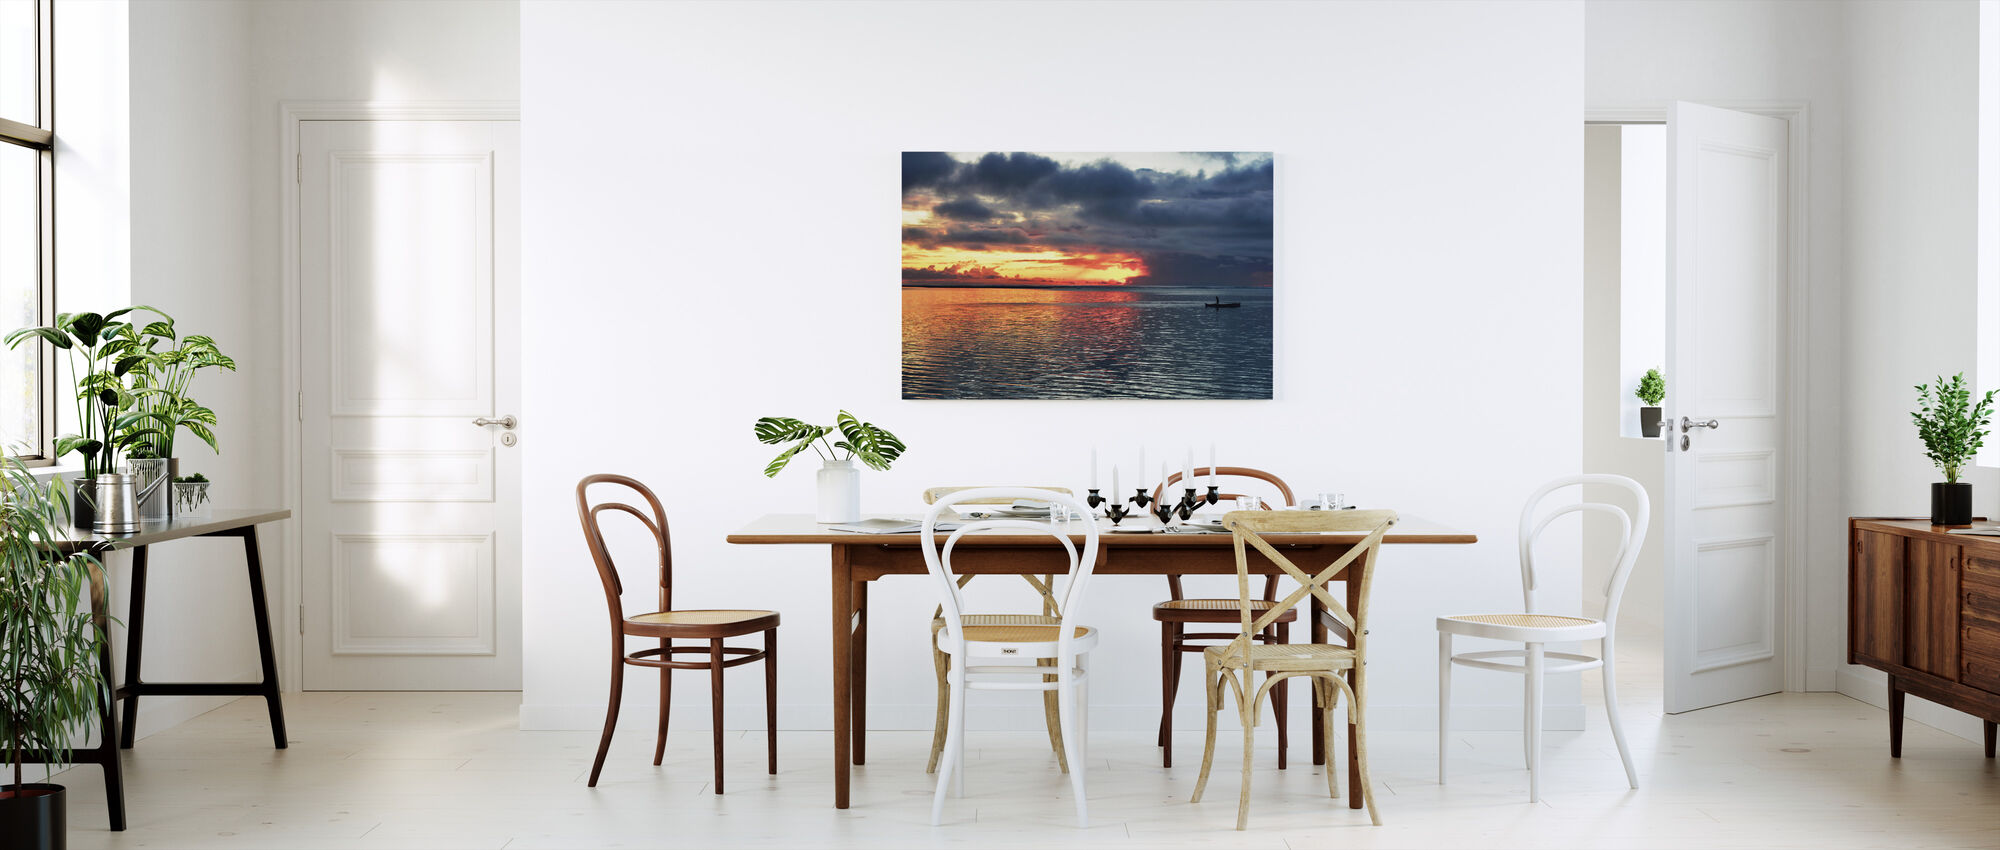 Sun is Setting With The Sea and Him - Canvas print - Kitchen